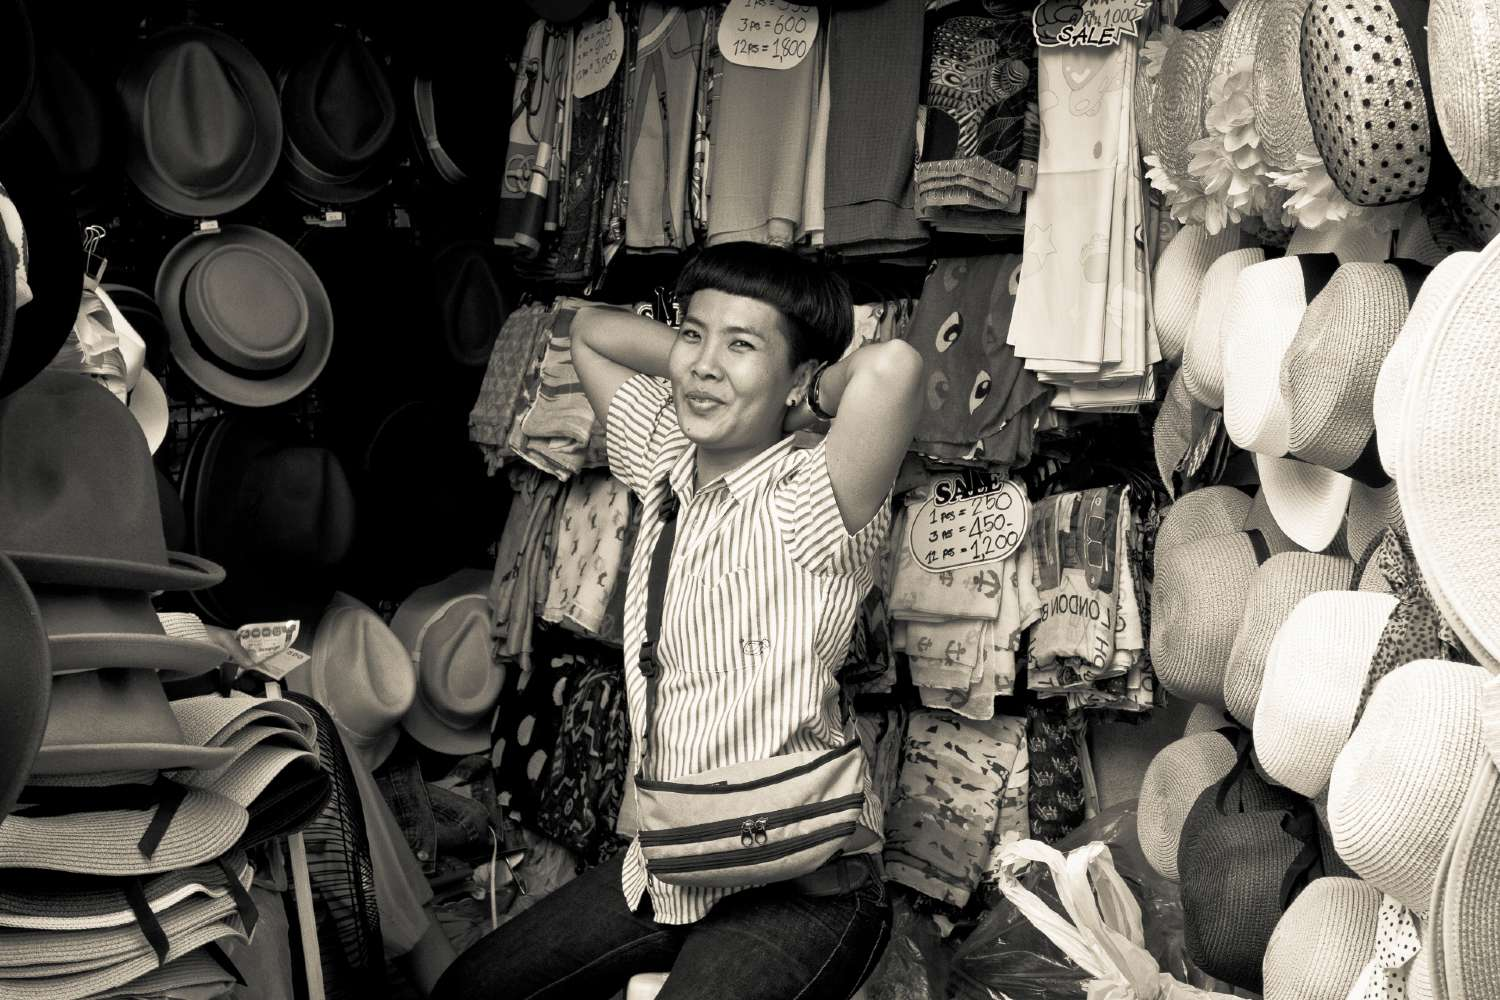 Whilst taking street photography in Bangkok I captured a hat seller in Yaowarat market by surprise and she gave a lovely smile.